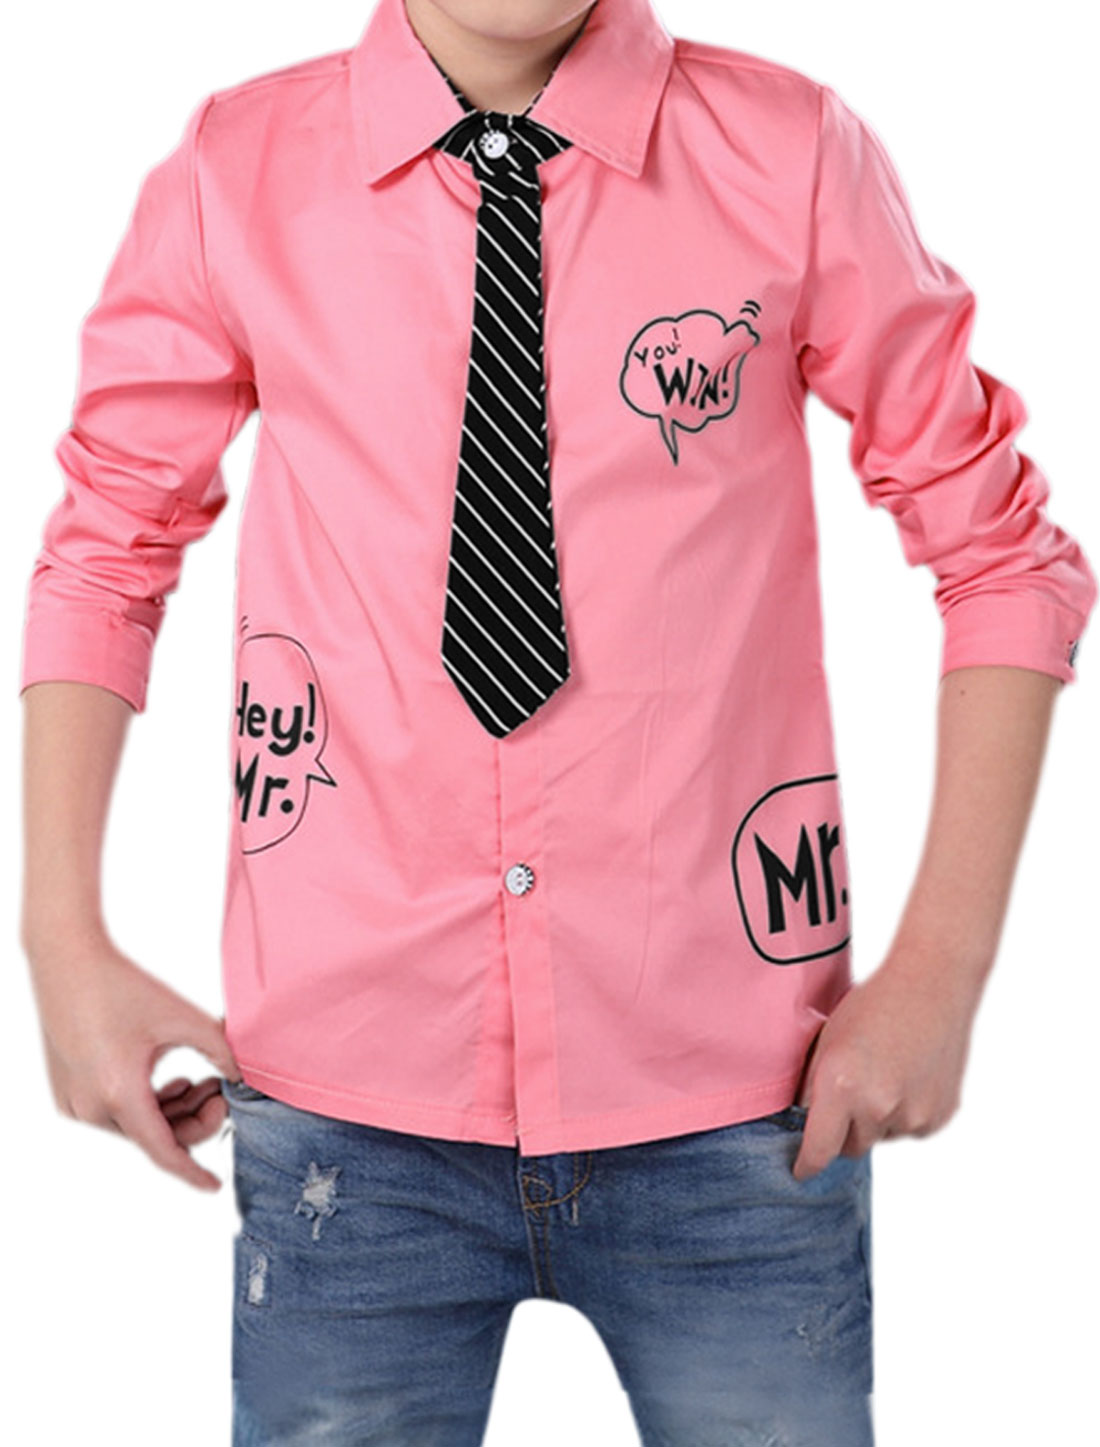 Boys Letters Prints Mock Striped Tie Casual Shirt Allegra Kids Pink 12